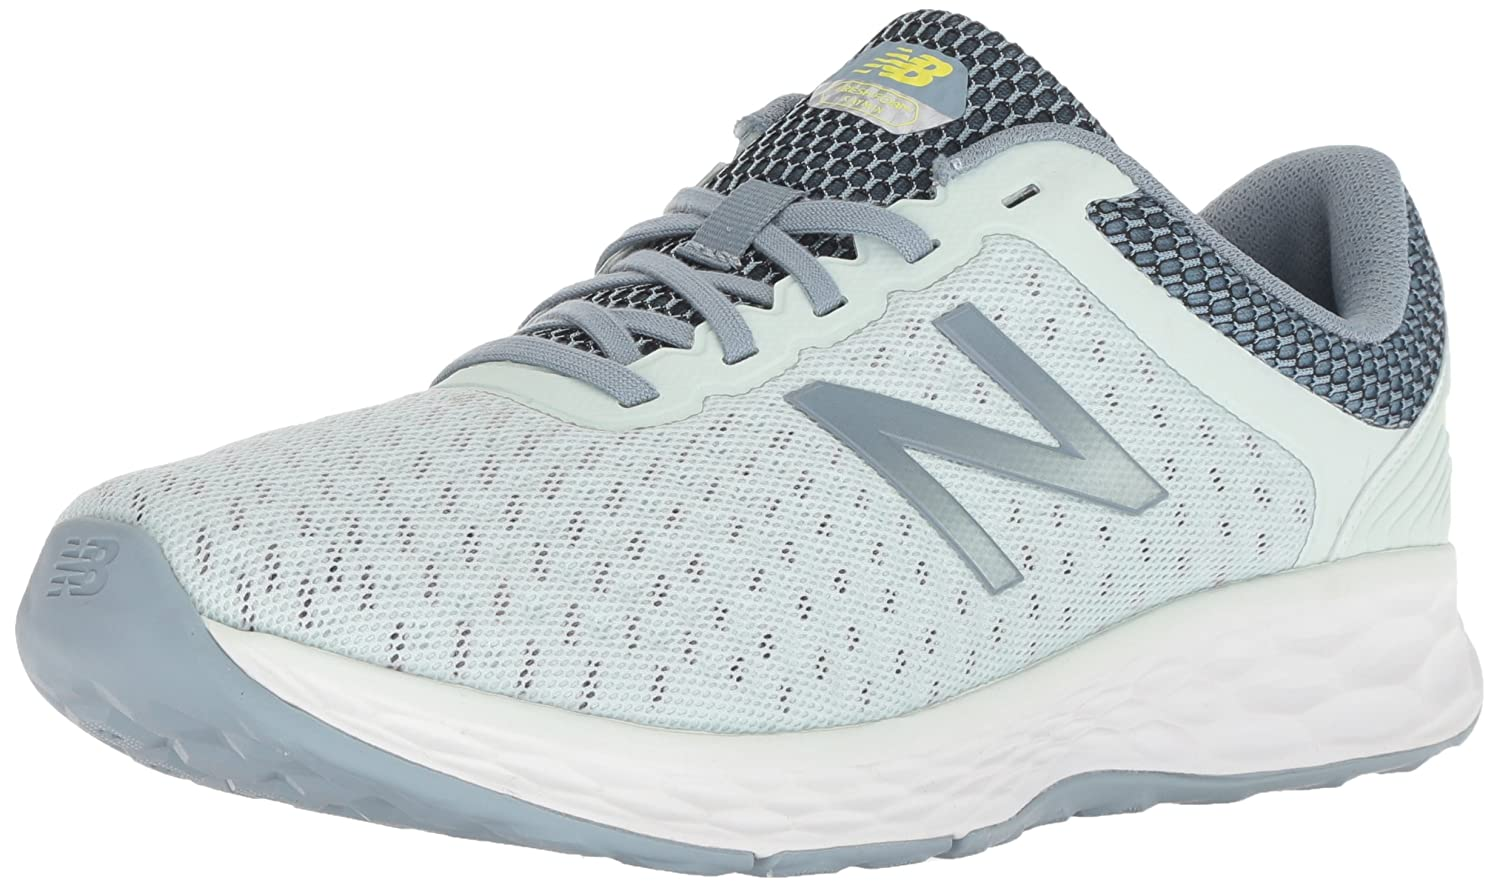 New Balance Women's Kaymin Trail v1 Fresh Foam Trail Running Shoe B075R7N3LV 9.5 B(M) US|Ocean Air